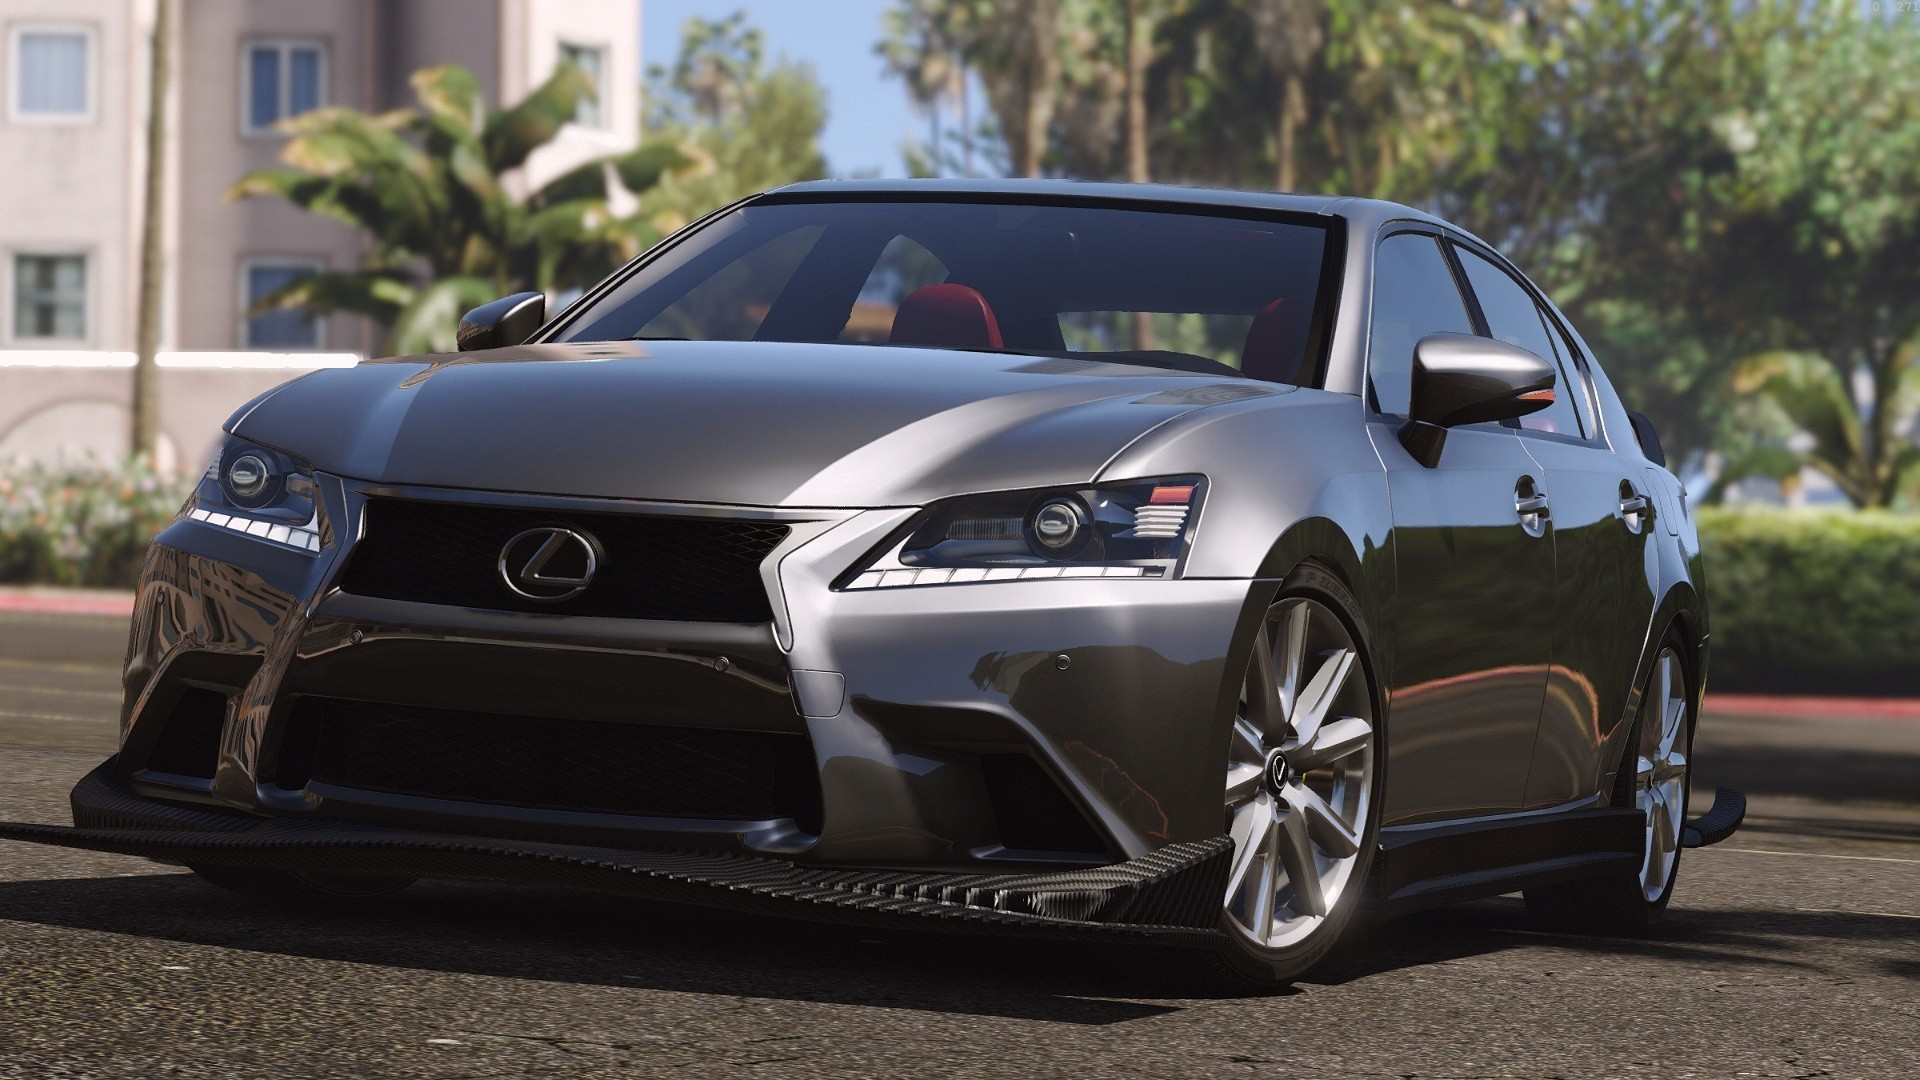 lexus gs 350 v hicules t l chargements gta 5. Black Bedroom Furniture Sets. Home Design Ideas